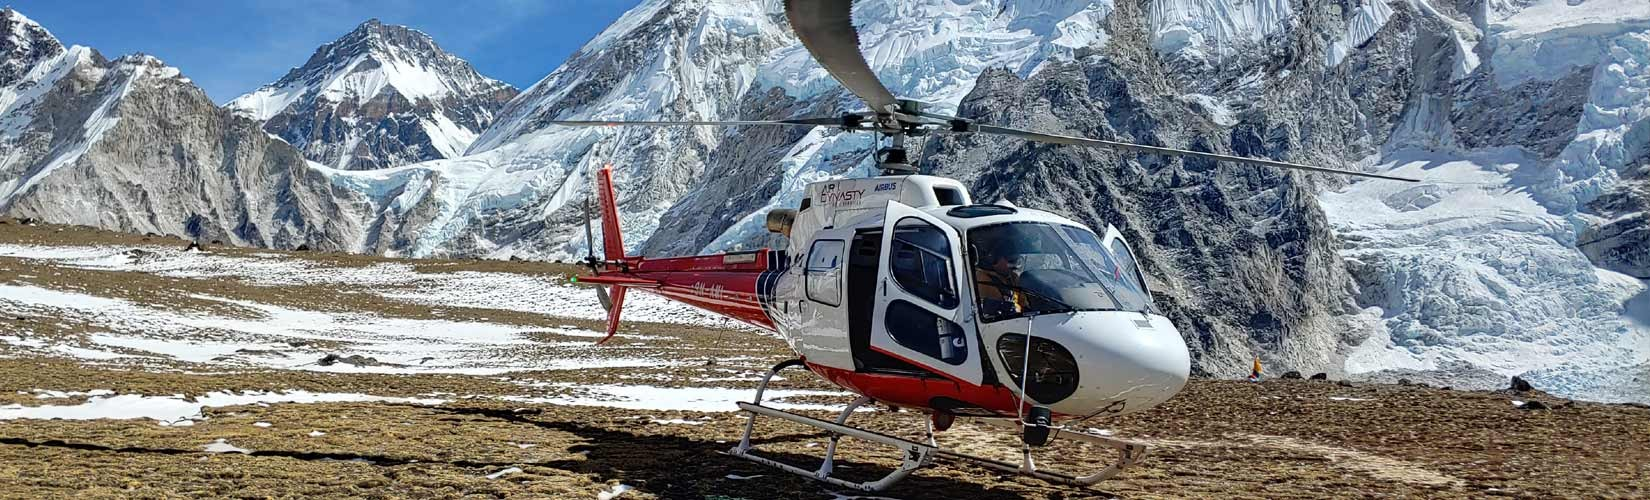 Mount Everest Base Camp Helicopter Tour, Heli tour in Nepal